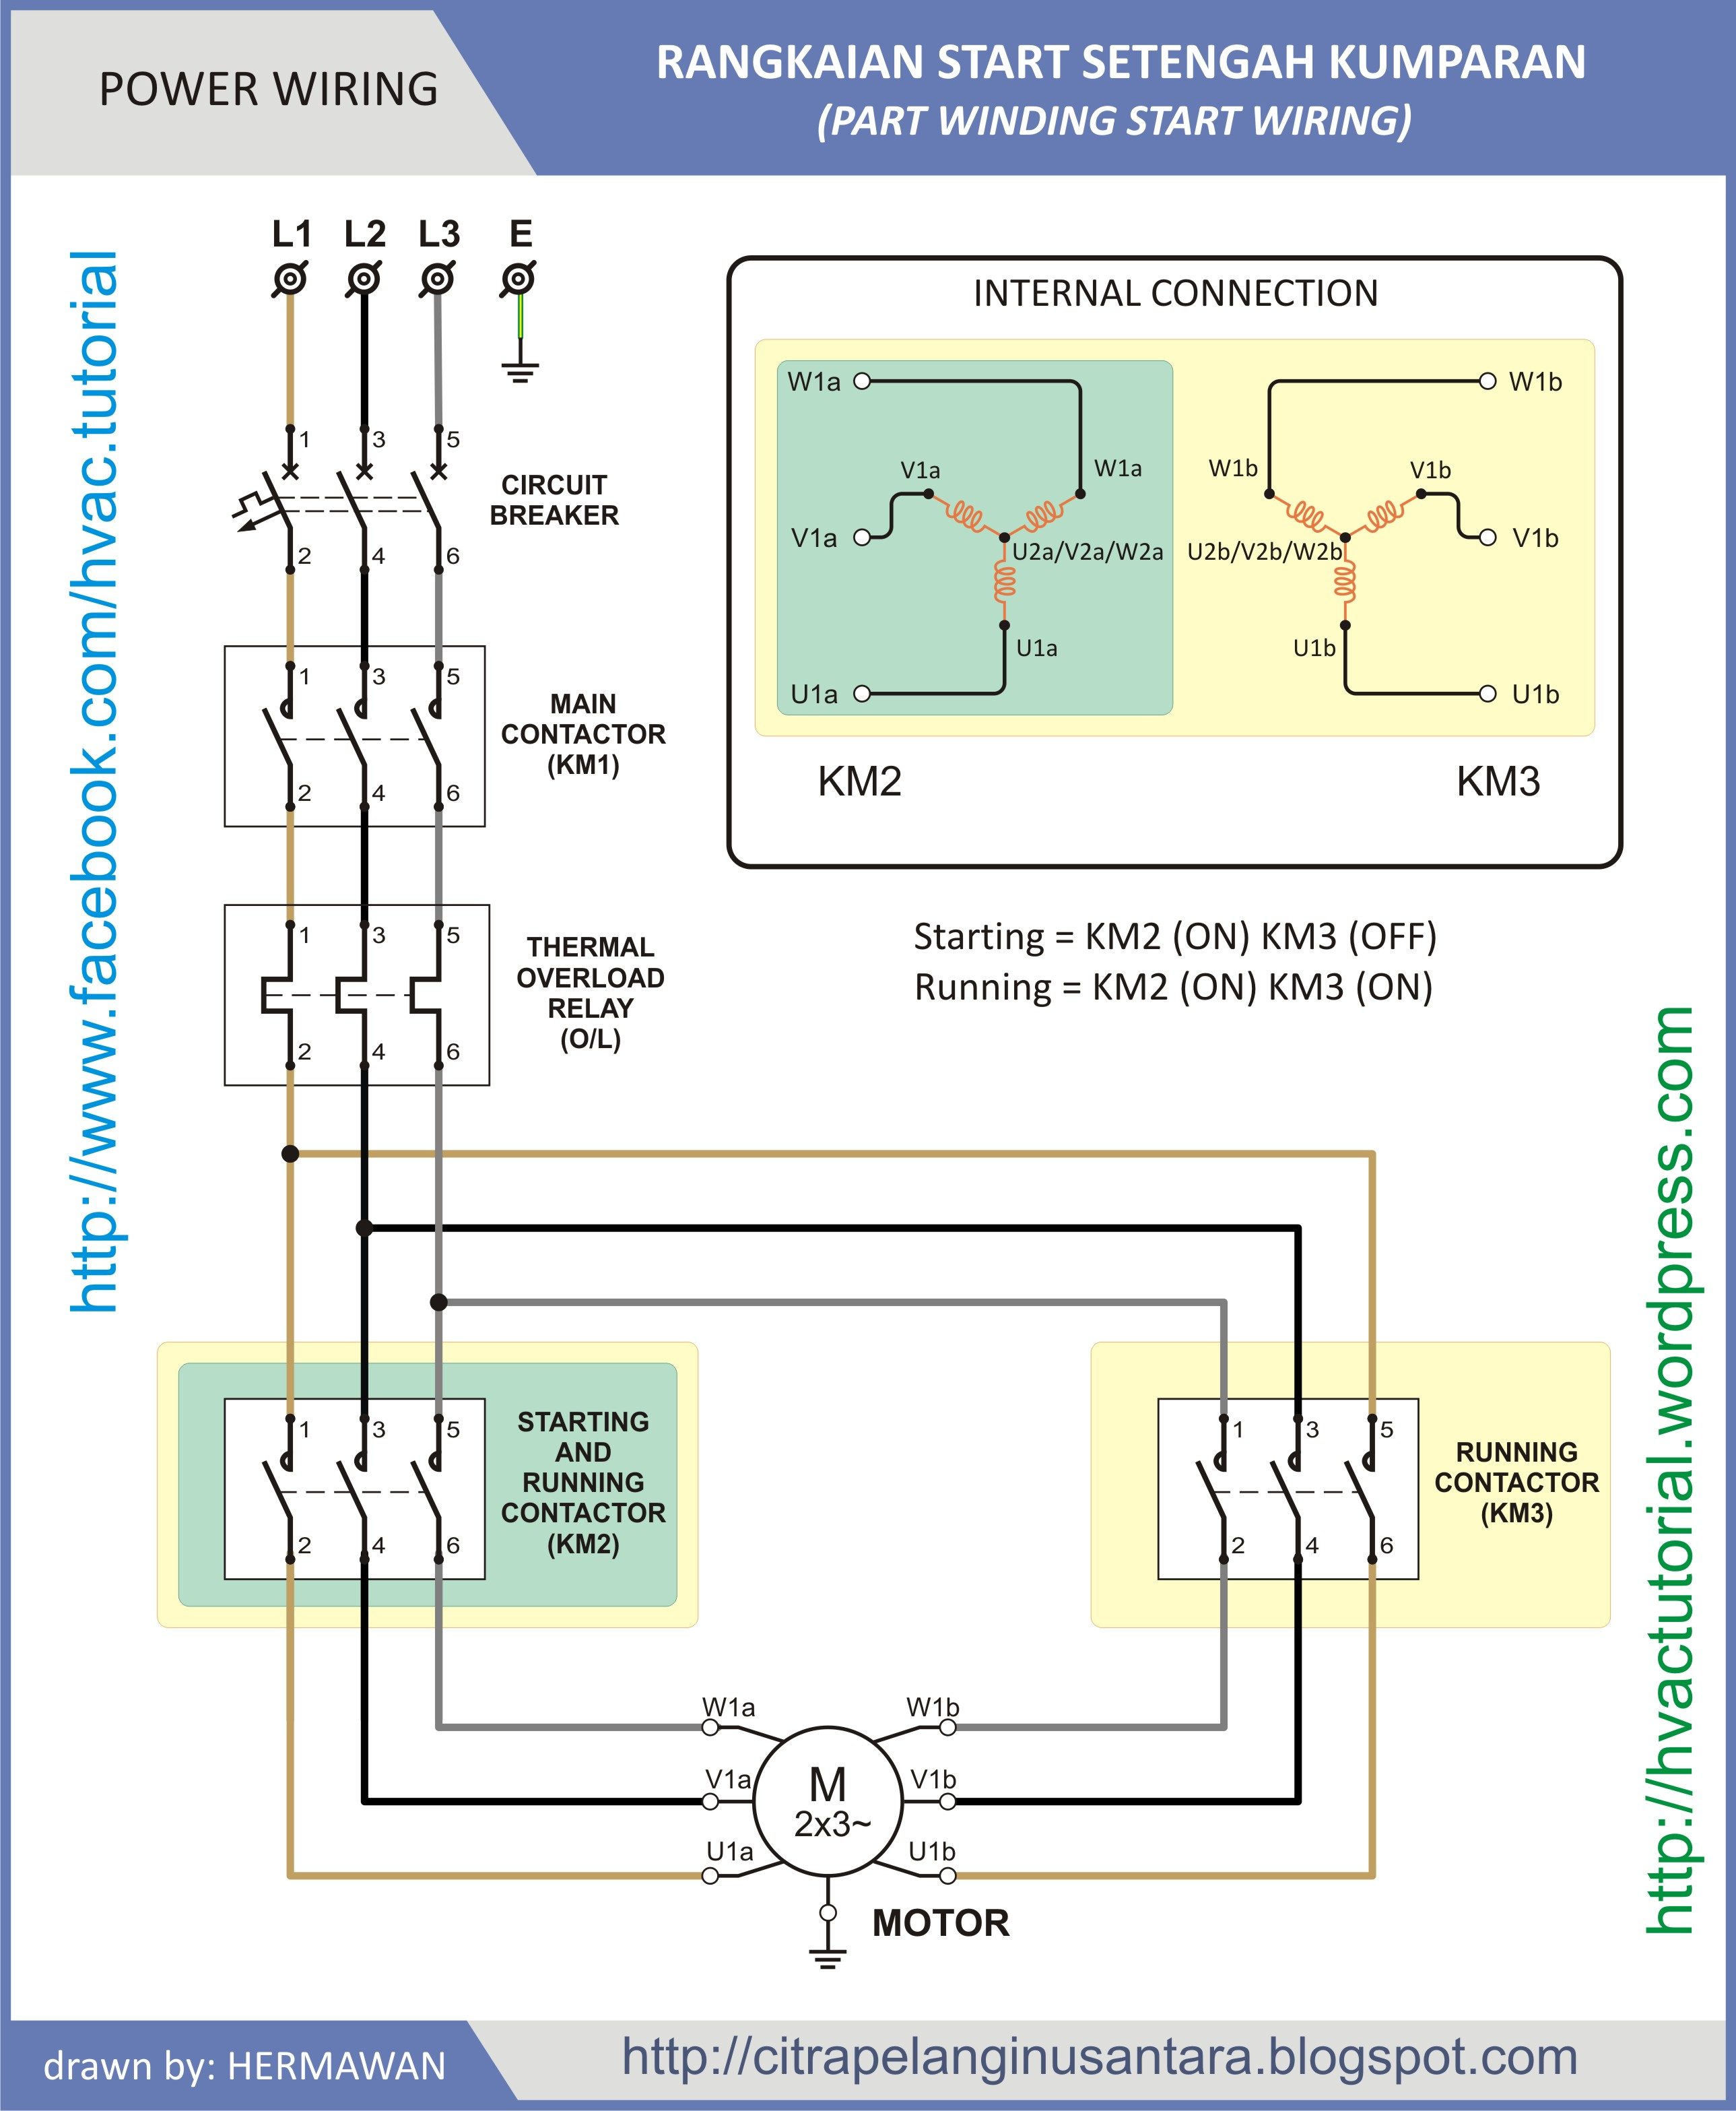 carrier split ac wiring diagram dna fingerprinting part winding start | hermawan's blog (refrigeration and air conditioning systems)